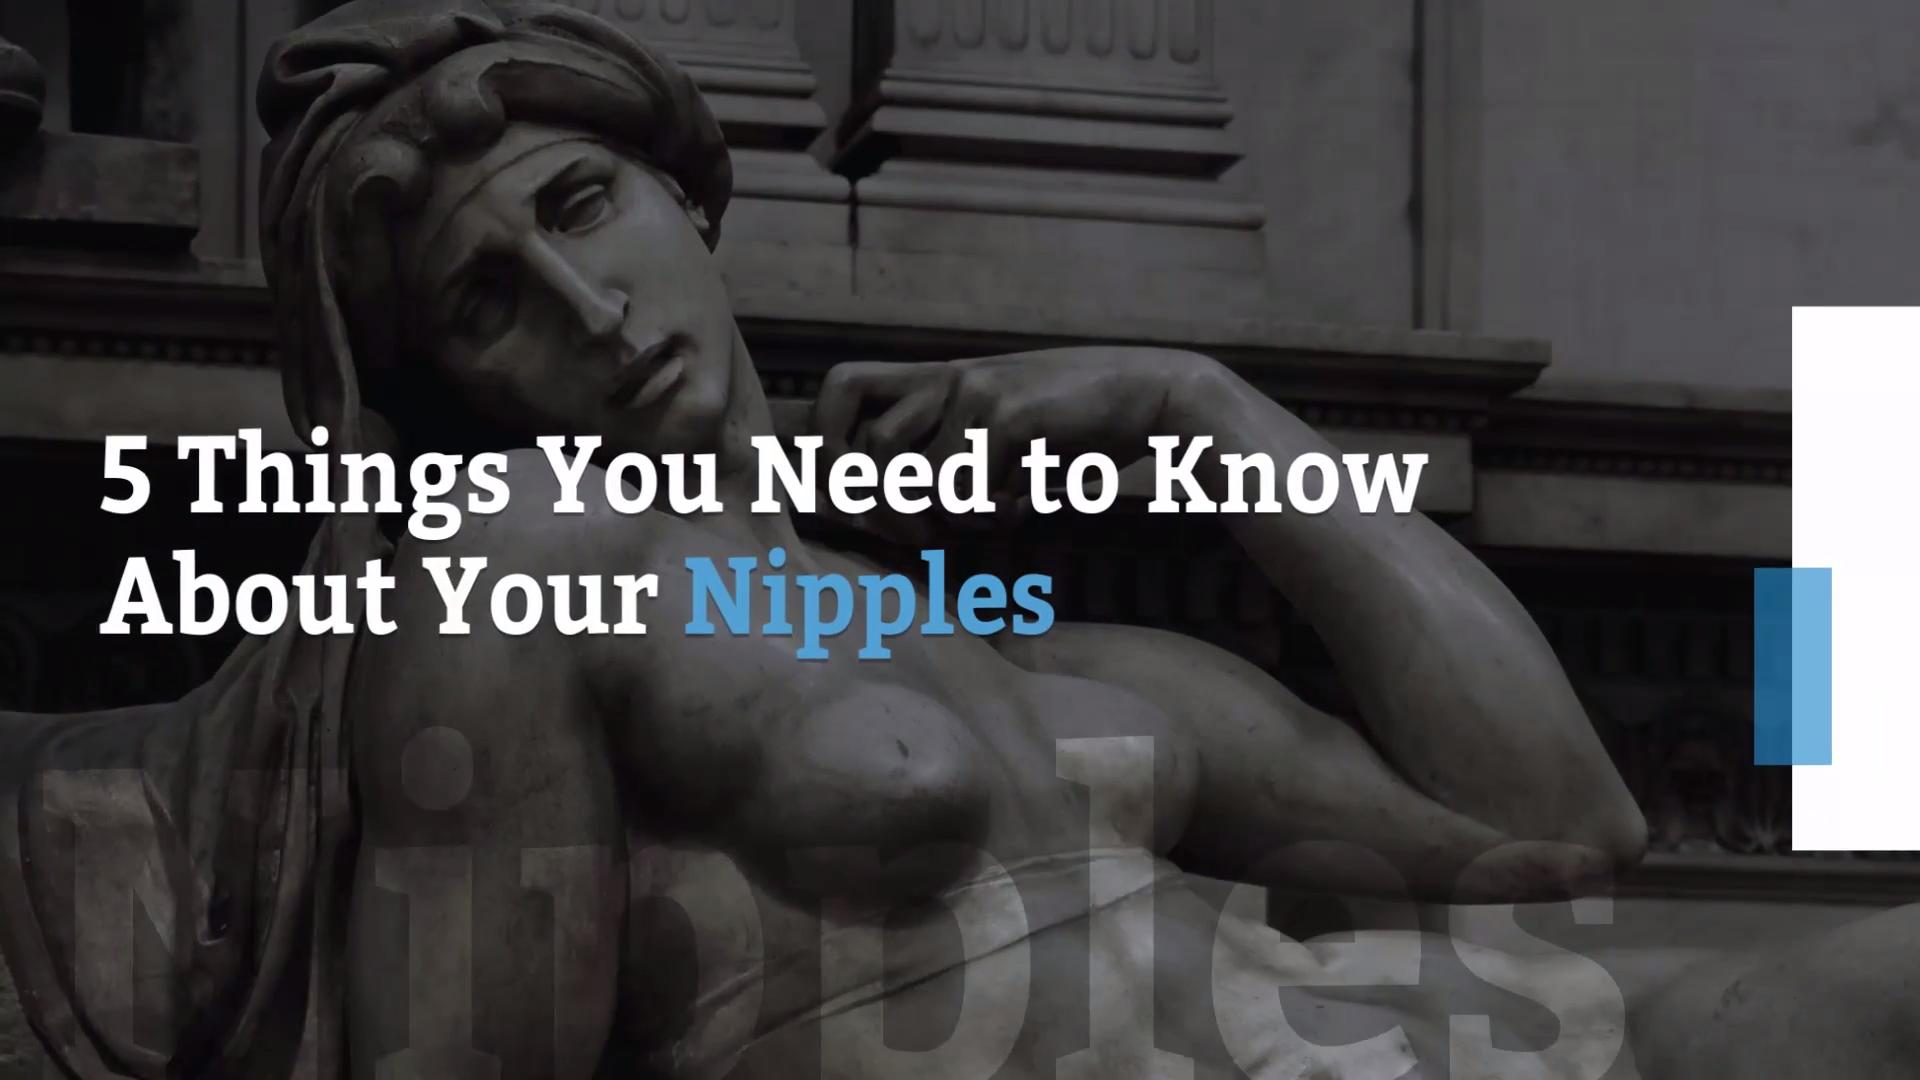 Get to know your nipples